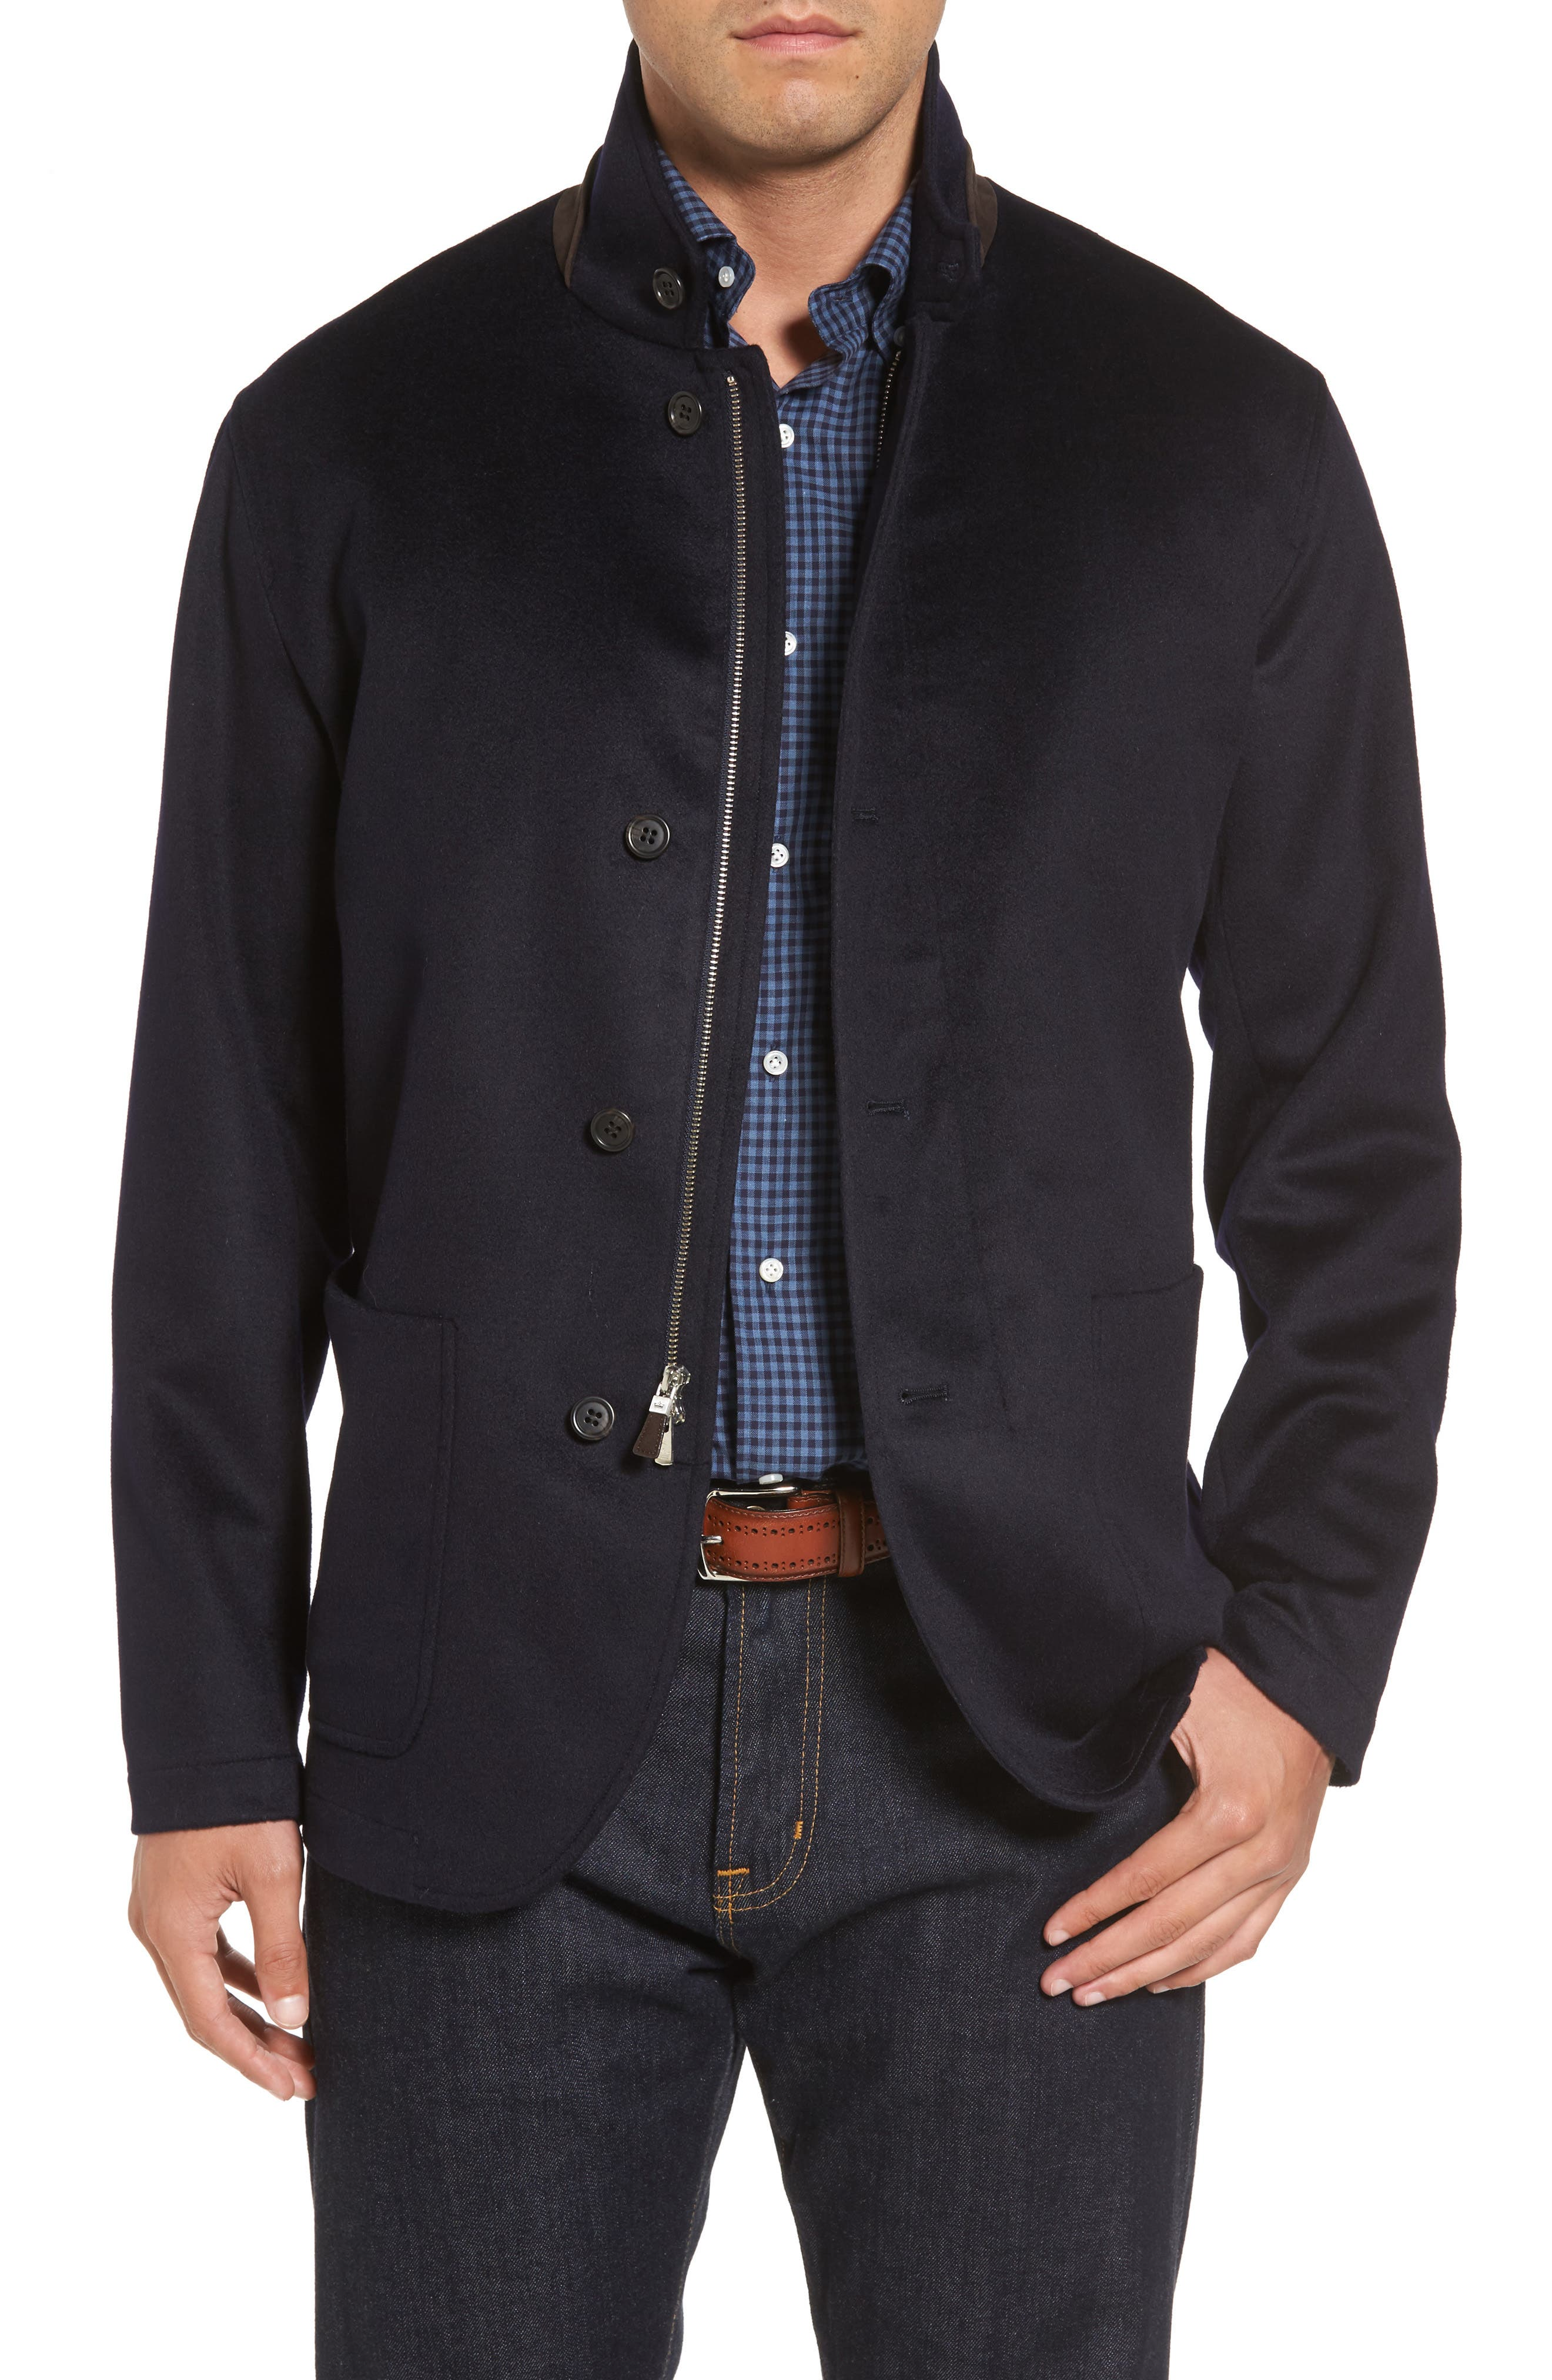 Crown Wool & Cashmere Jacket,                             Main thumbnail 1, color,                             Navy